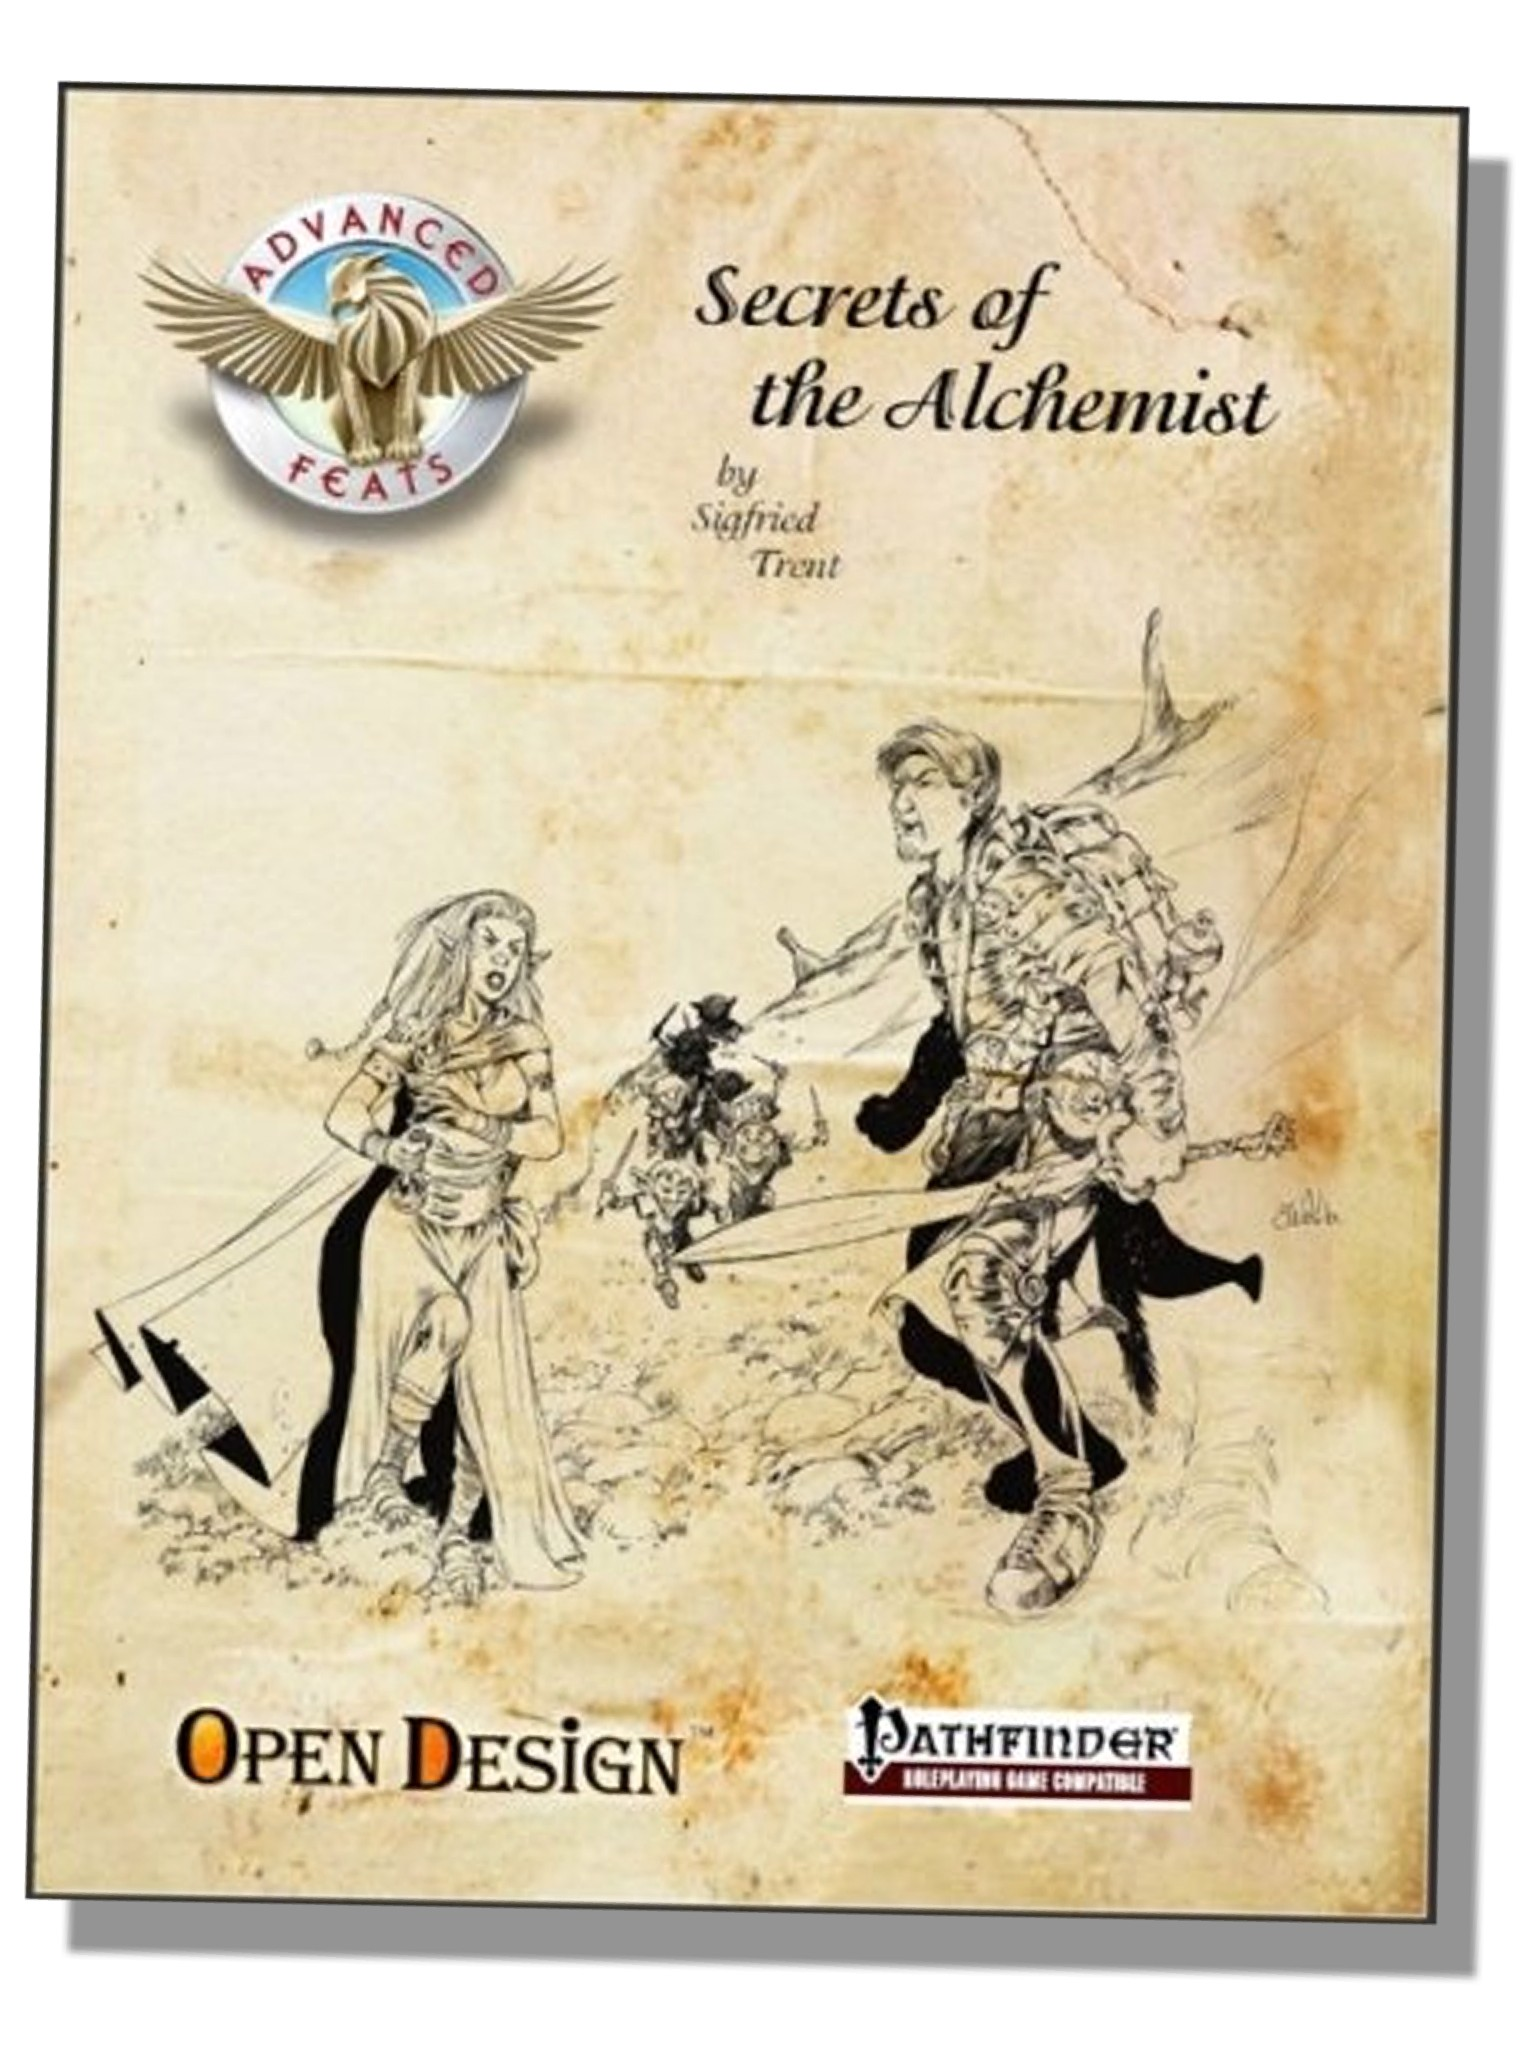 what about advanced feats secrets of the alchemist a review let